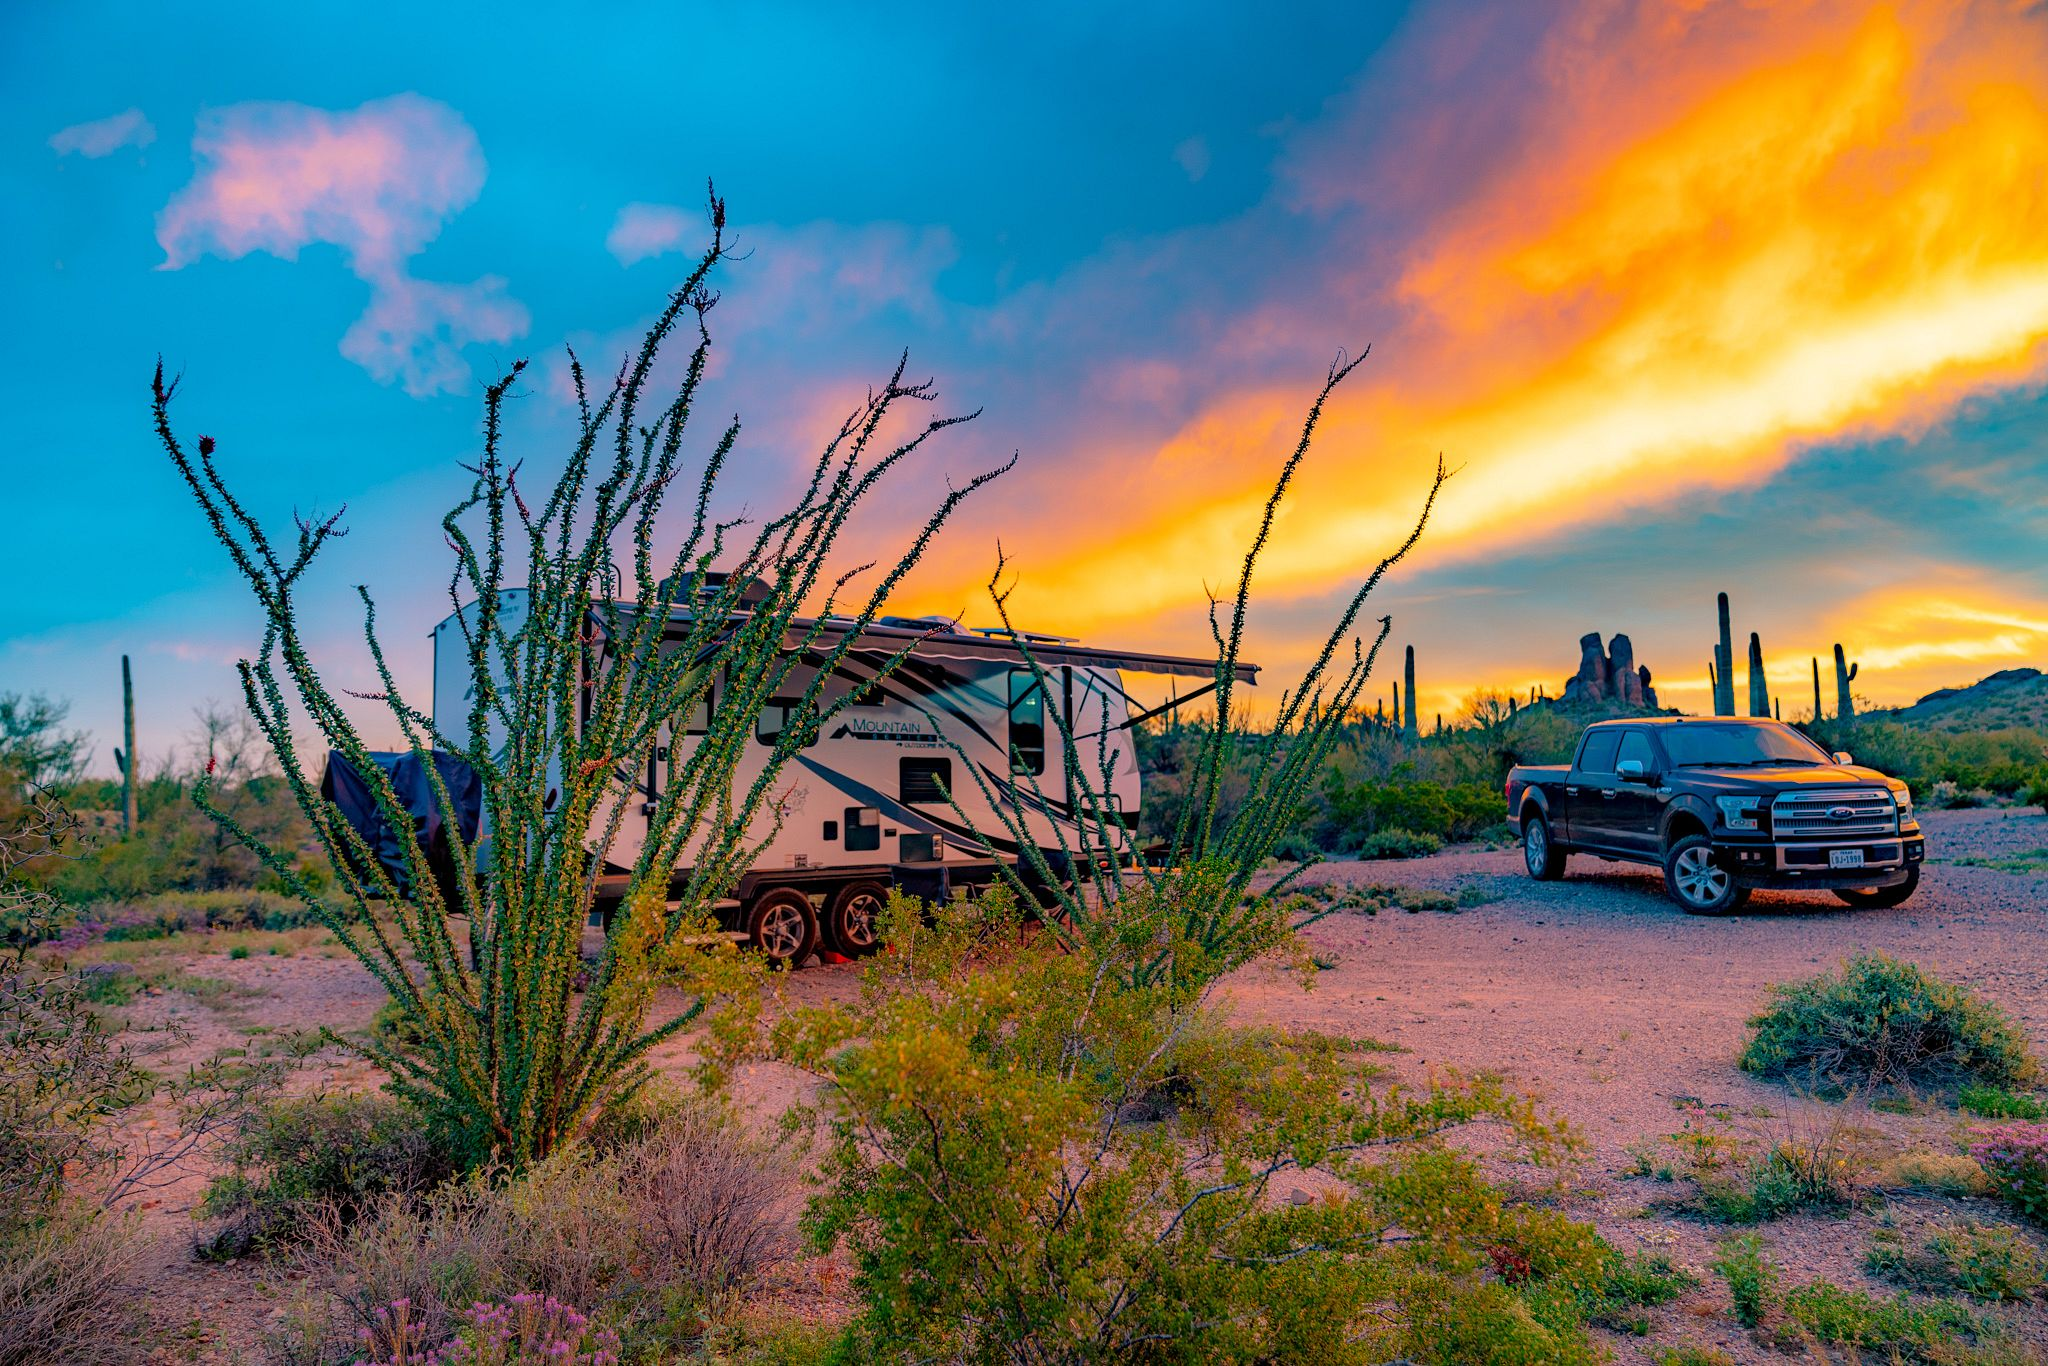 Outdoors RV Photo Contest Winner